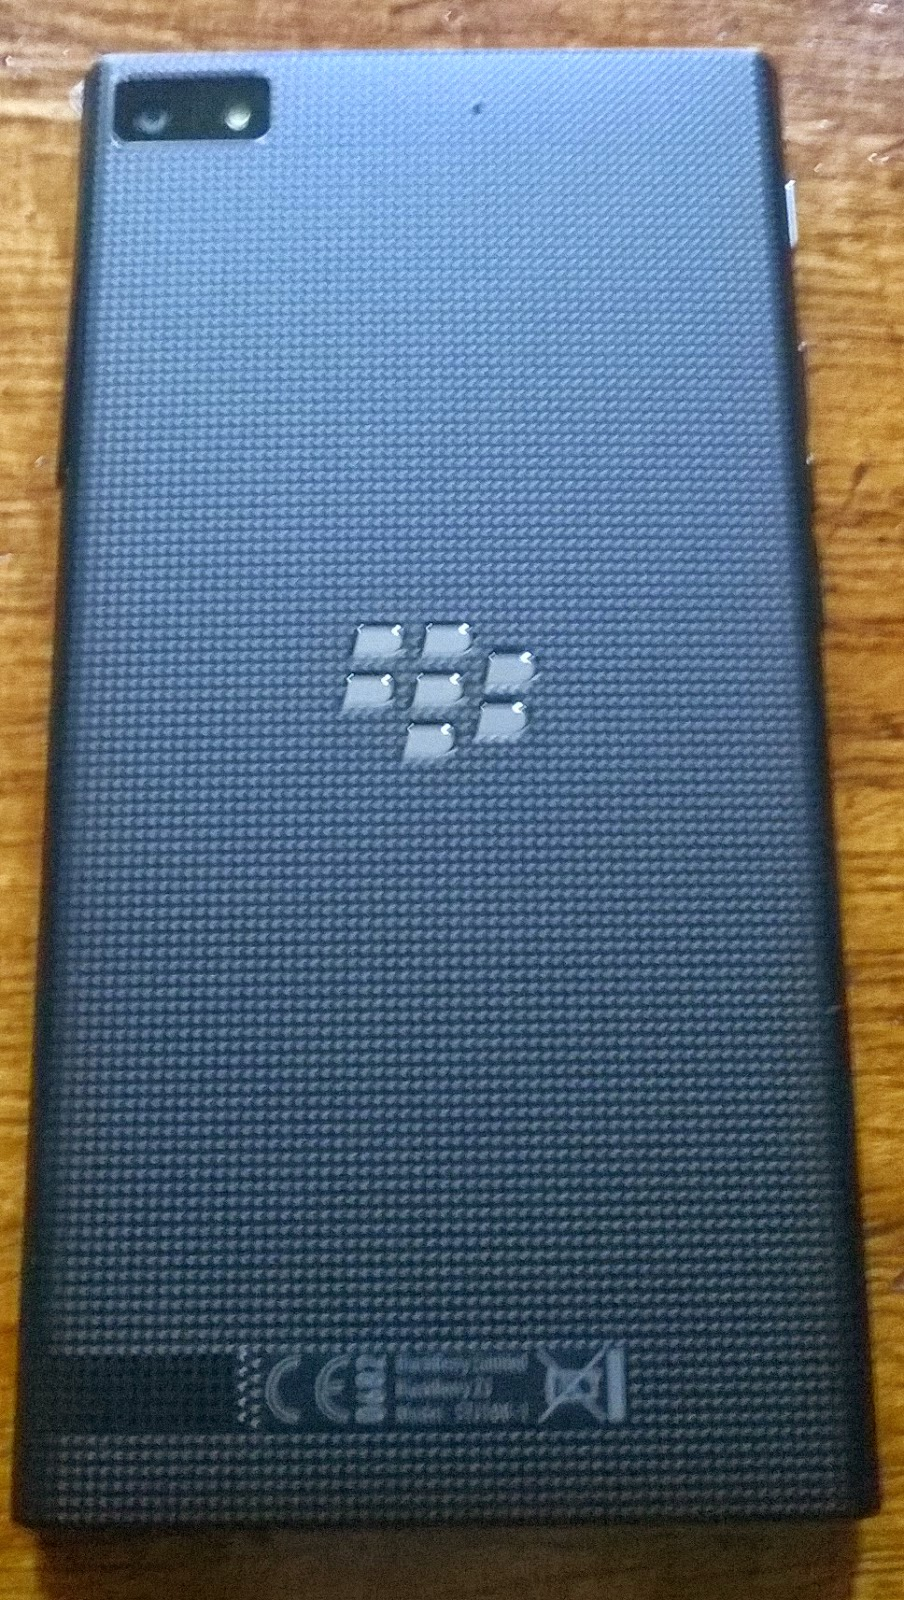 BlackBerry Z3 Review - First Impression - Nigeria Technology Guide